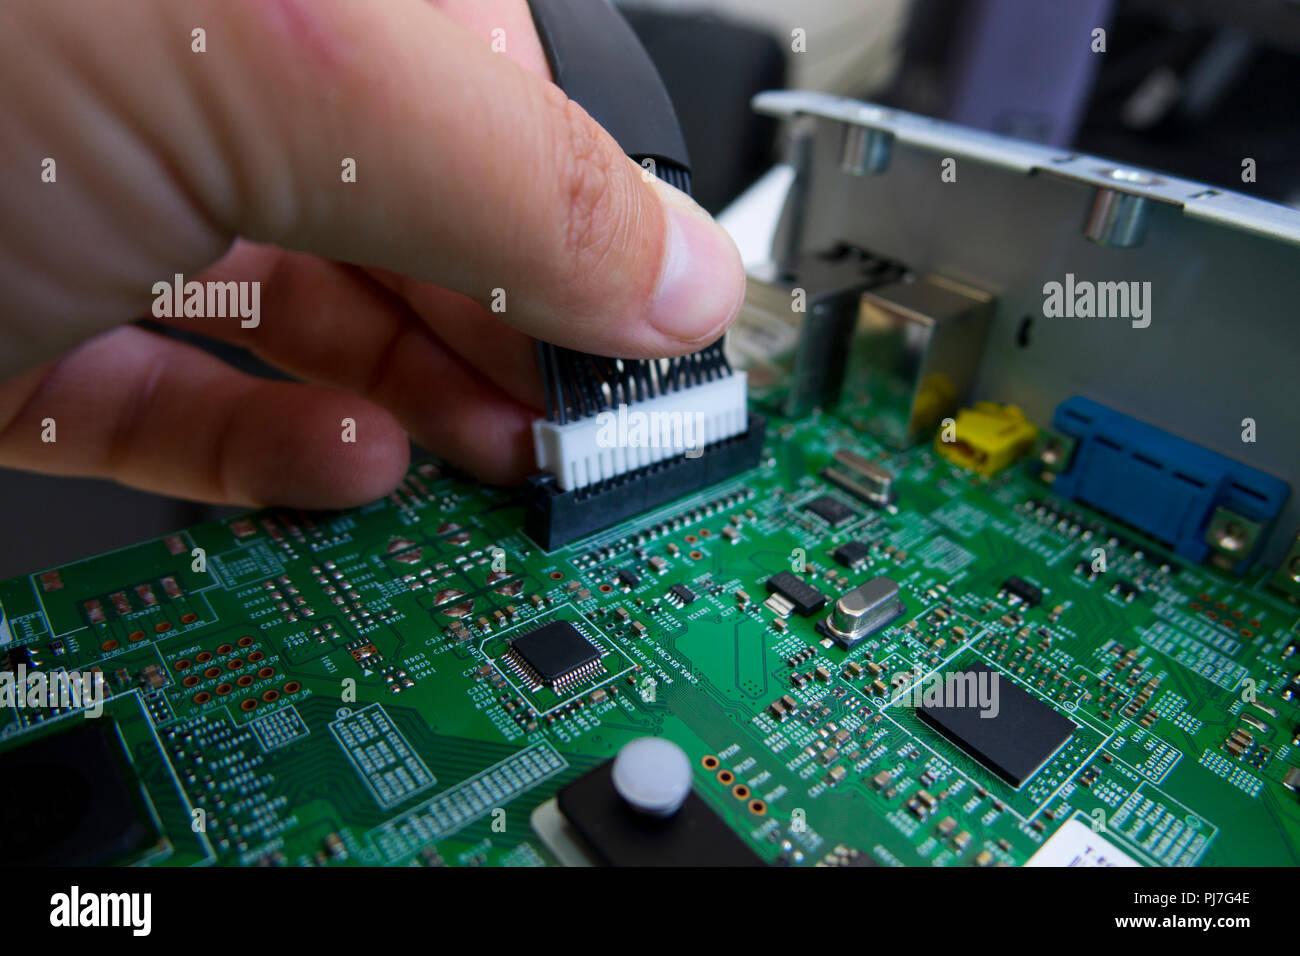 Electronics Manufacturing Stock Photos Pcb Assembly Manufacture Electronic Circuit Board China Buy Quality Control And Of Smt Printed Components On In Qc Lab